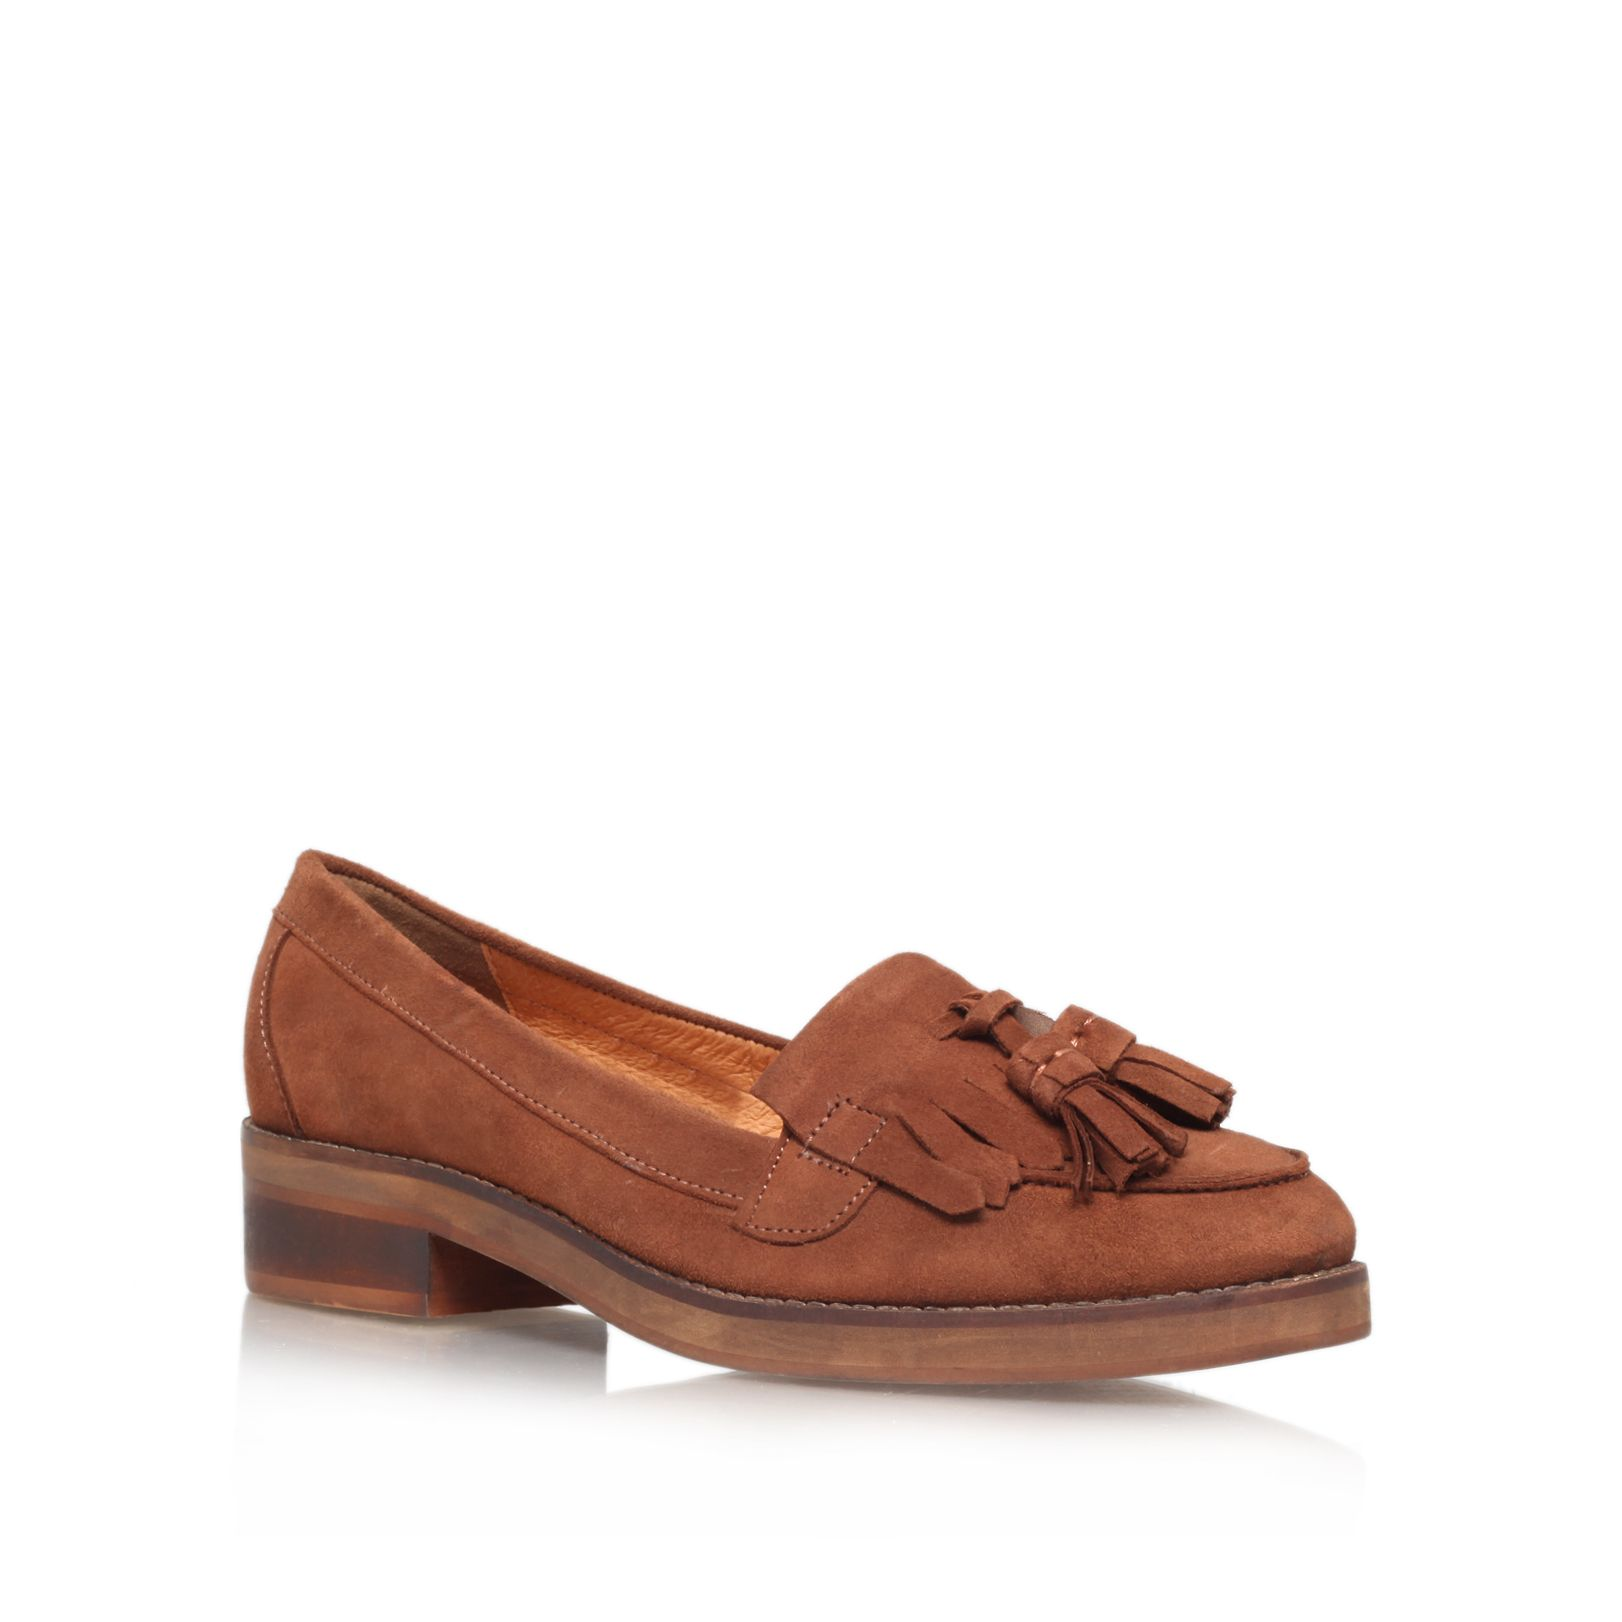 Lawson loafers